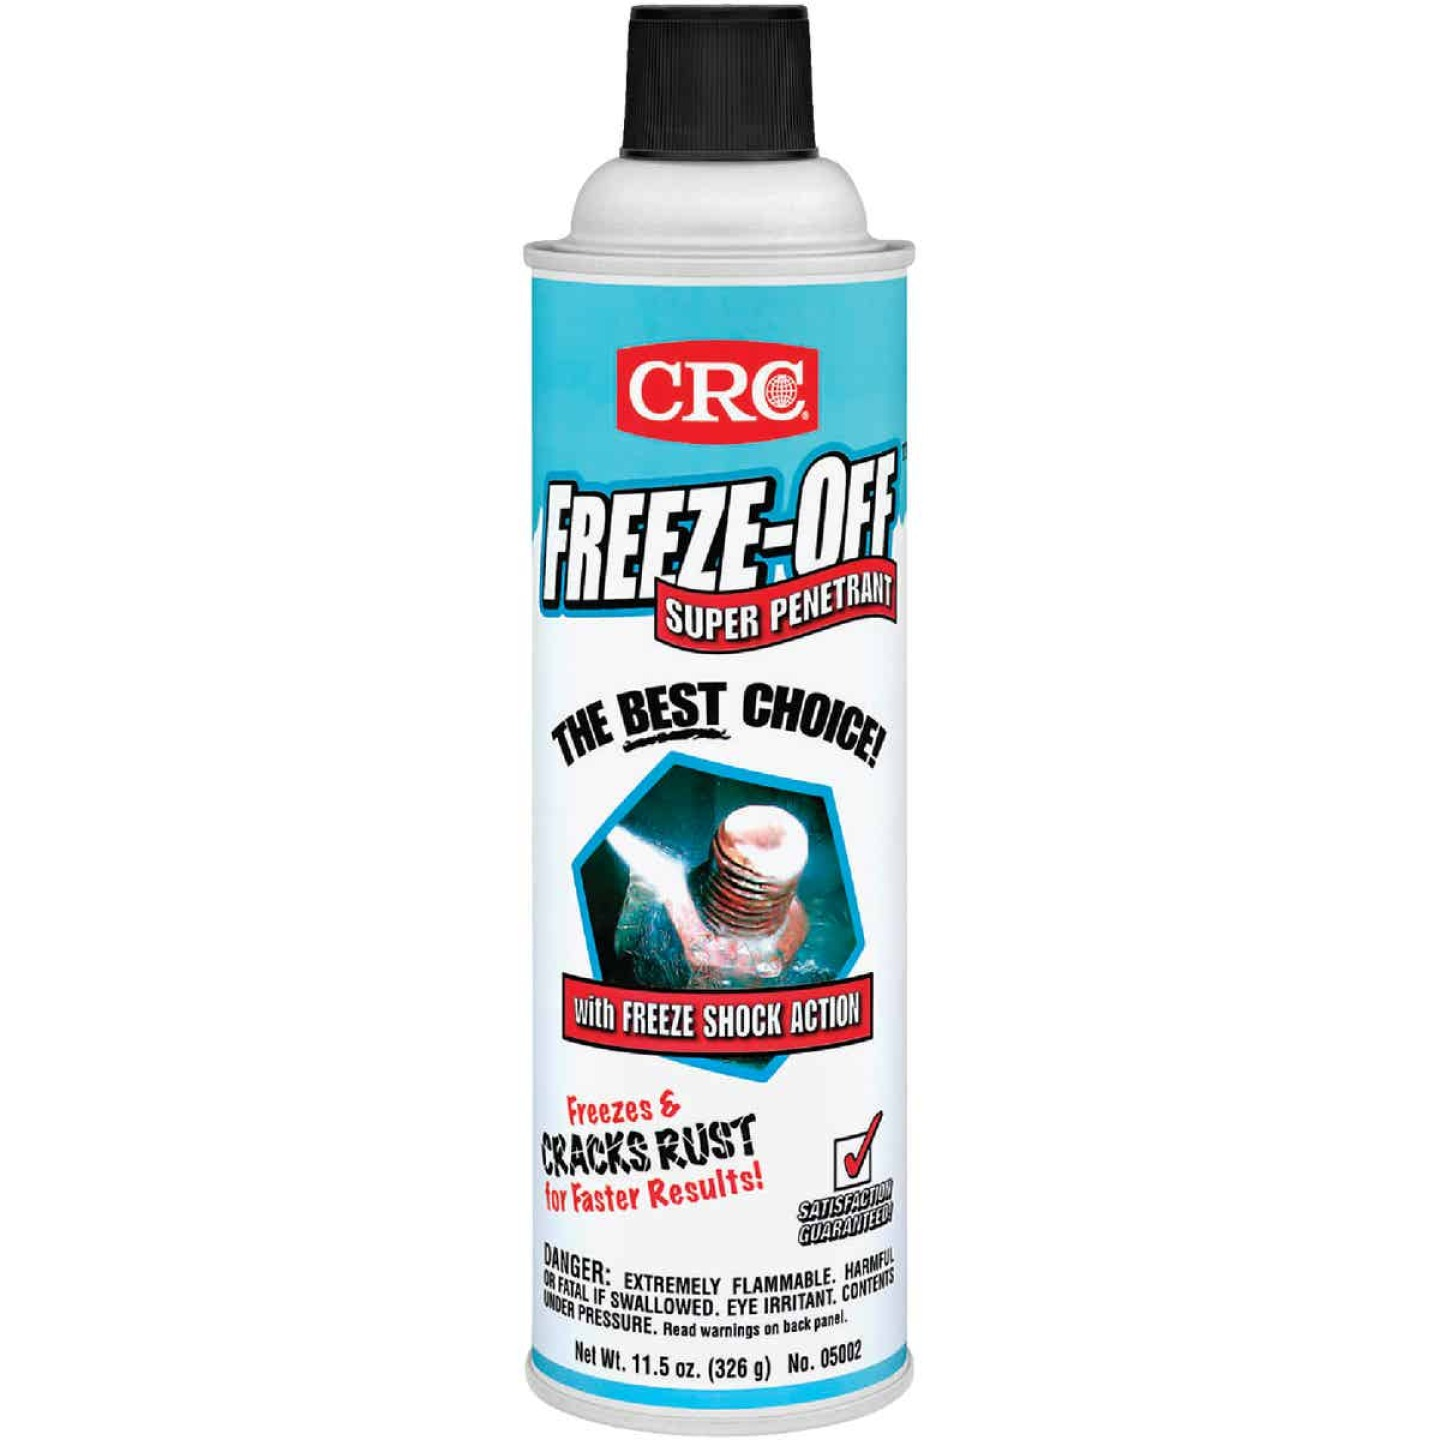 CRC Freeze-Off 11.5 Oz. Aerosol Penetrant Image 1